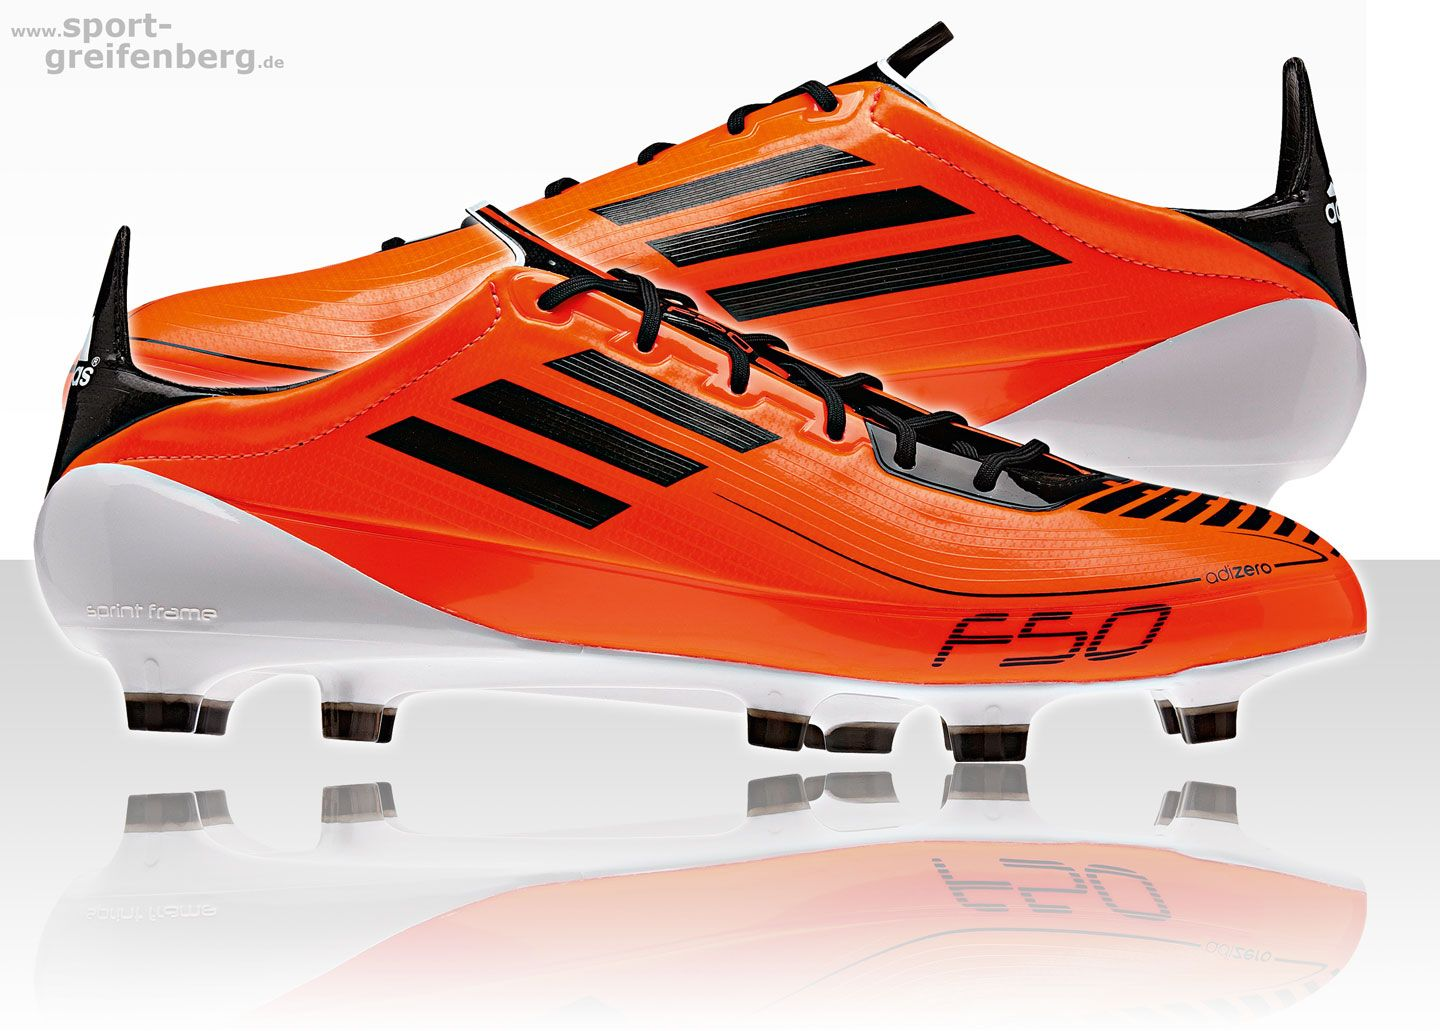 Football boots · Adidas F50 adizero 2011 orange